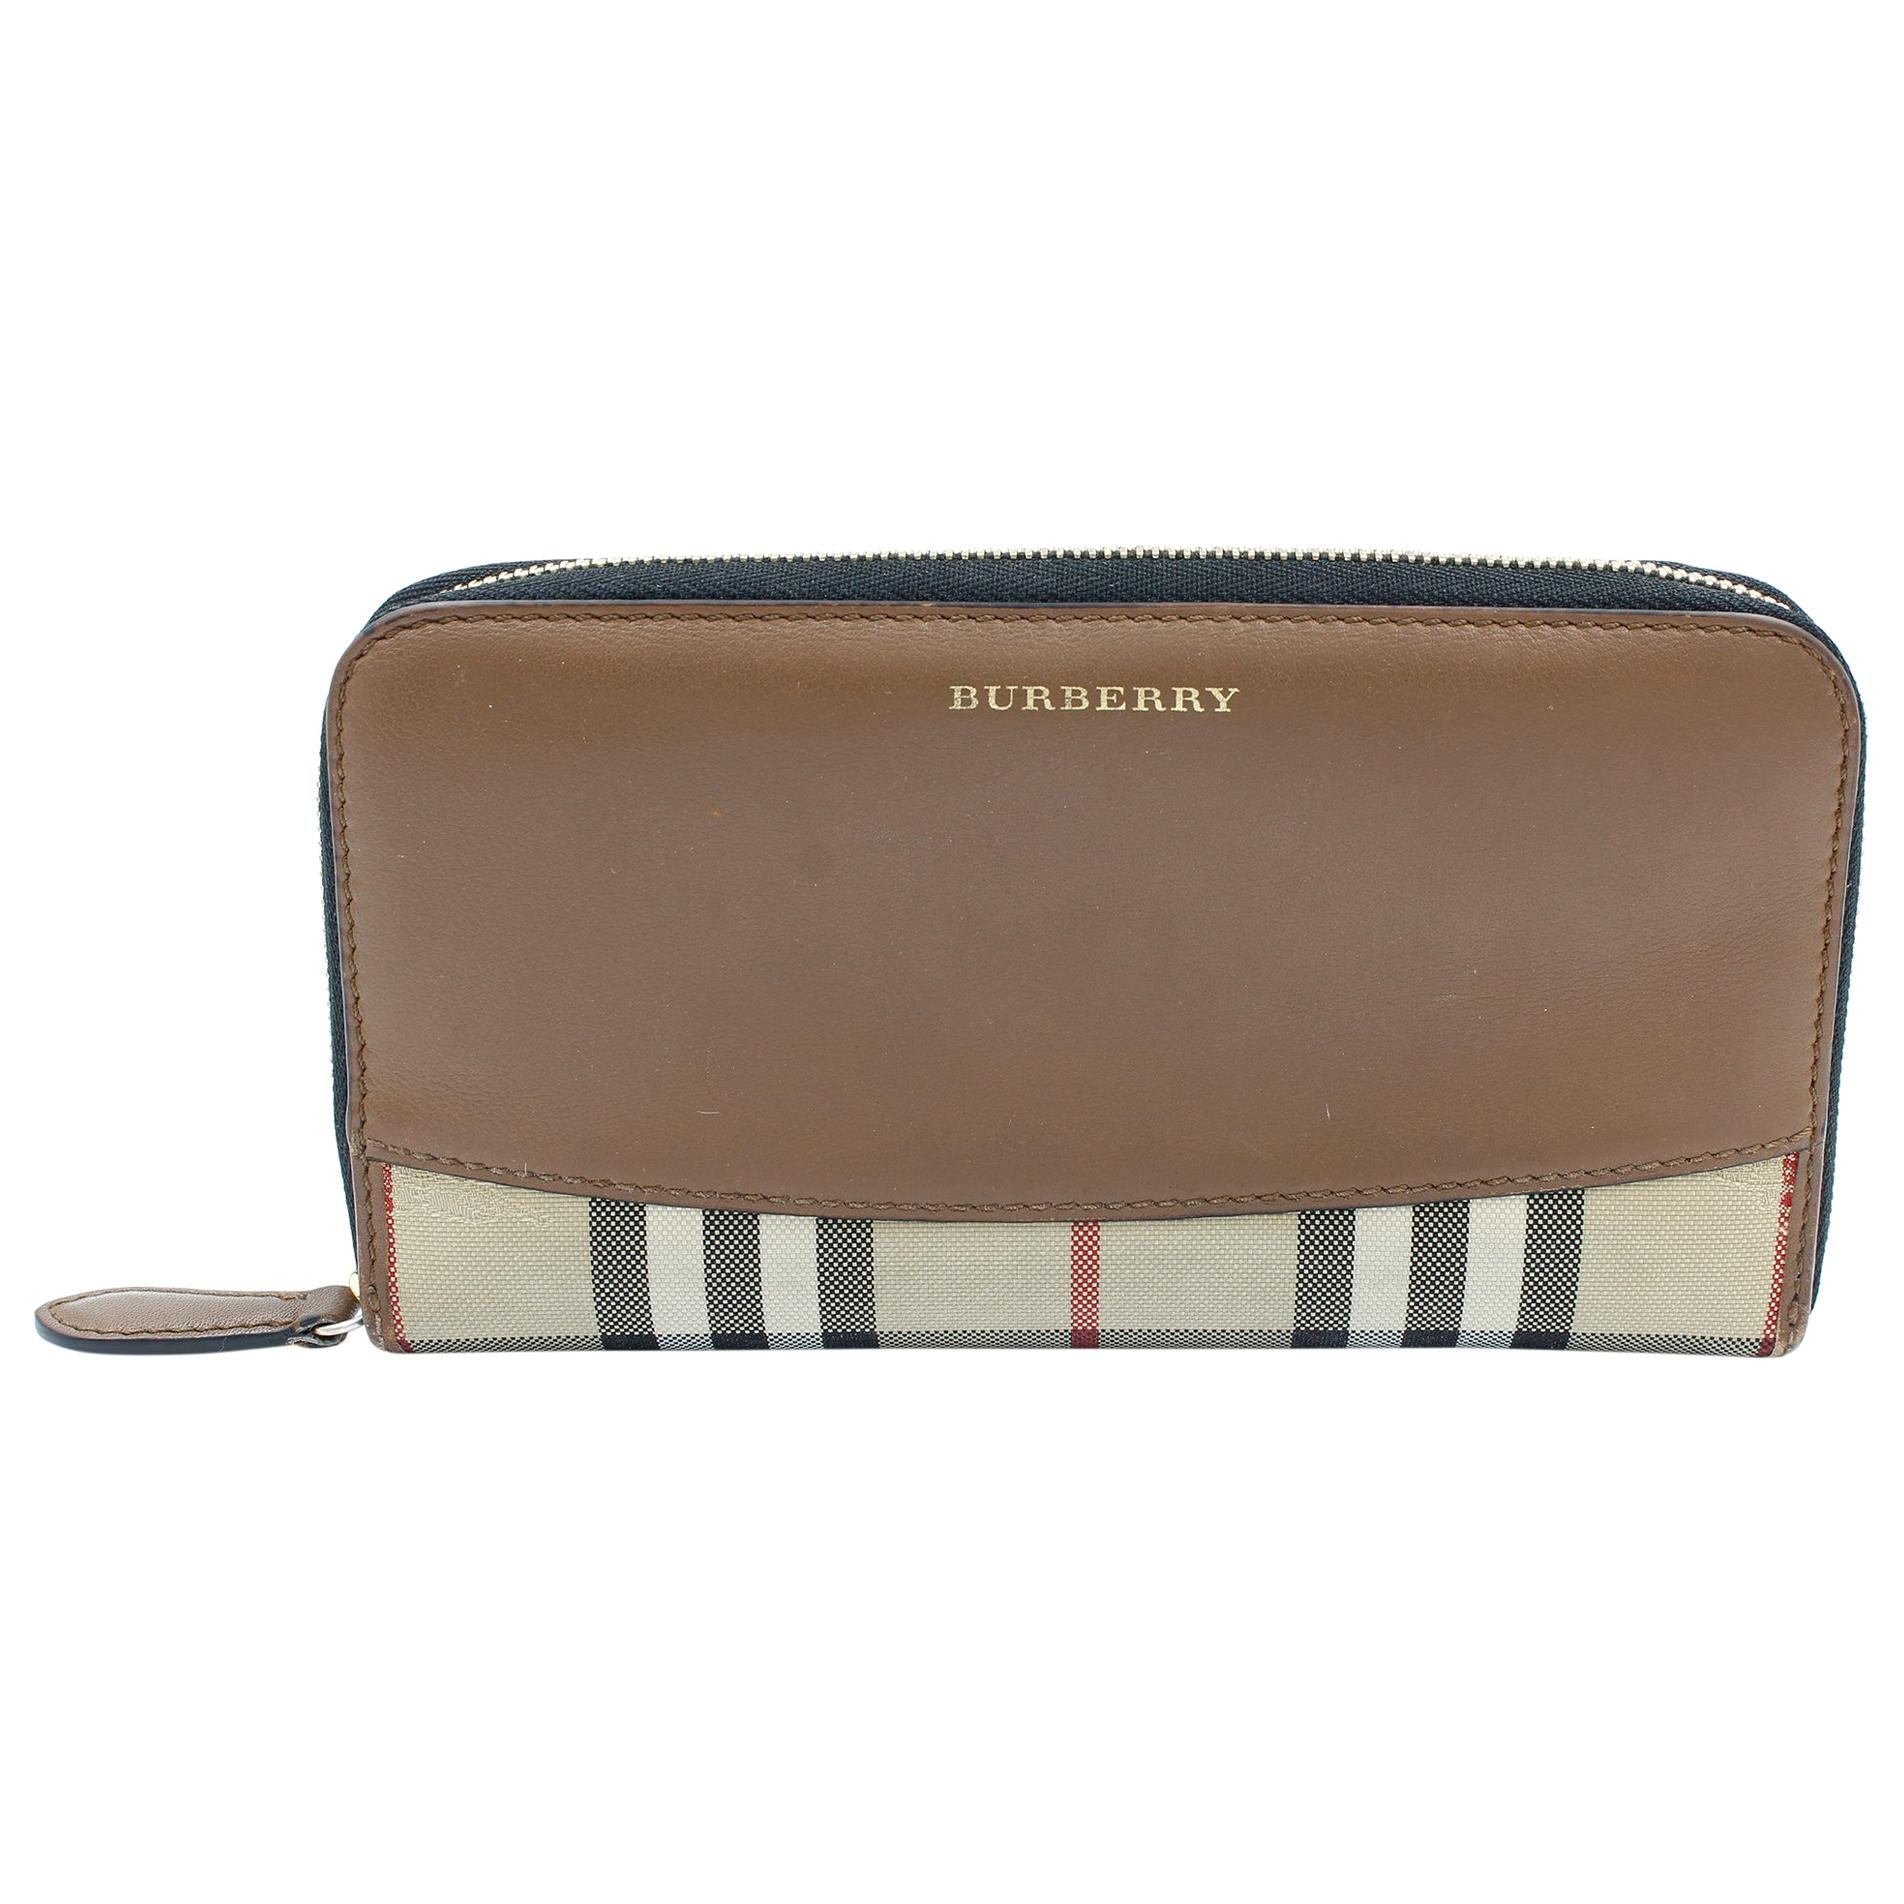 c5f9b2b959da Vintage Burberry Crossbody Bags and Messenger Bags - 16 For Sale at 1stdibs